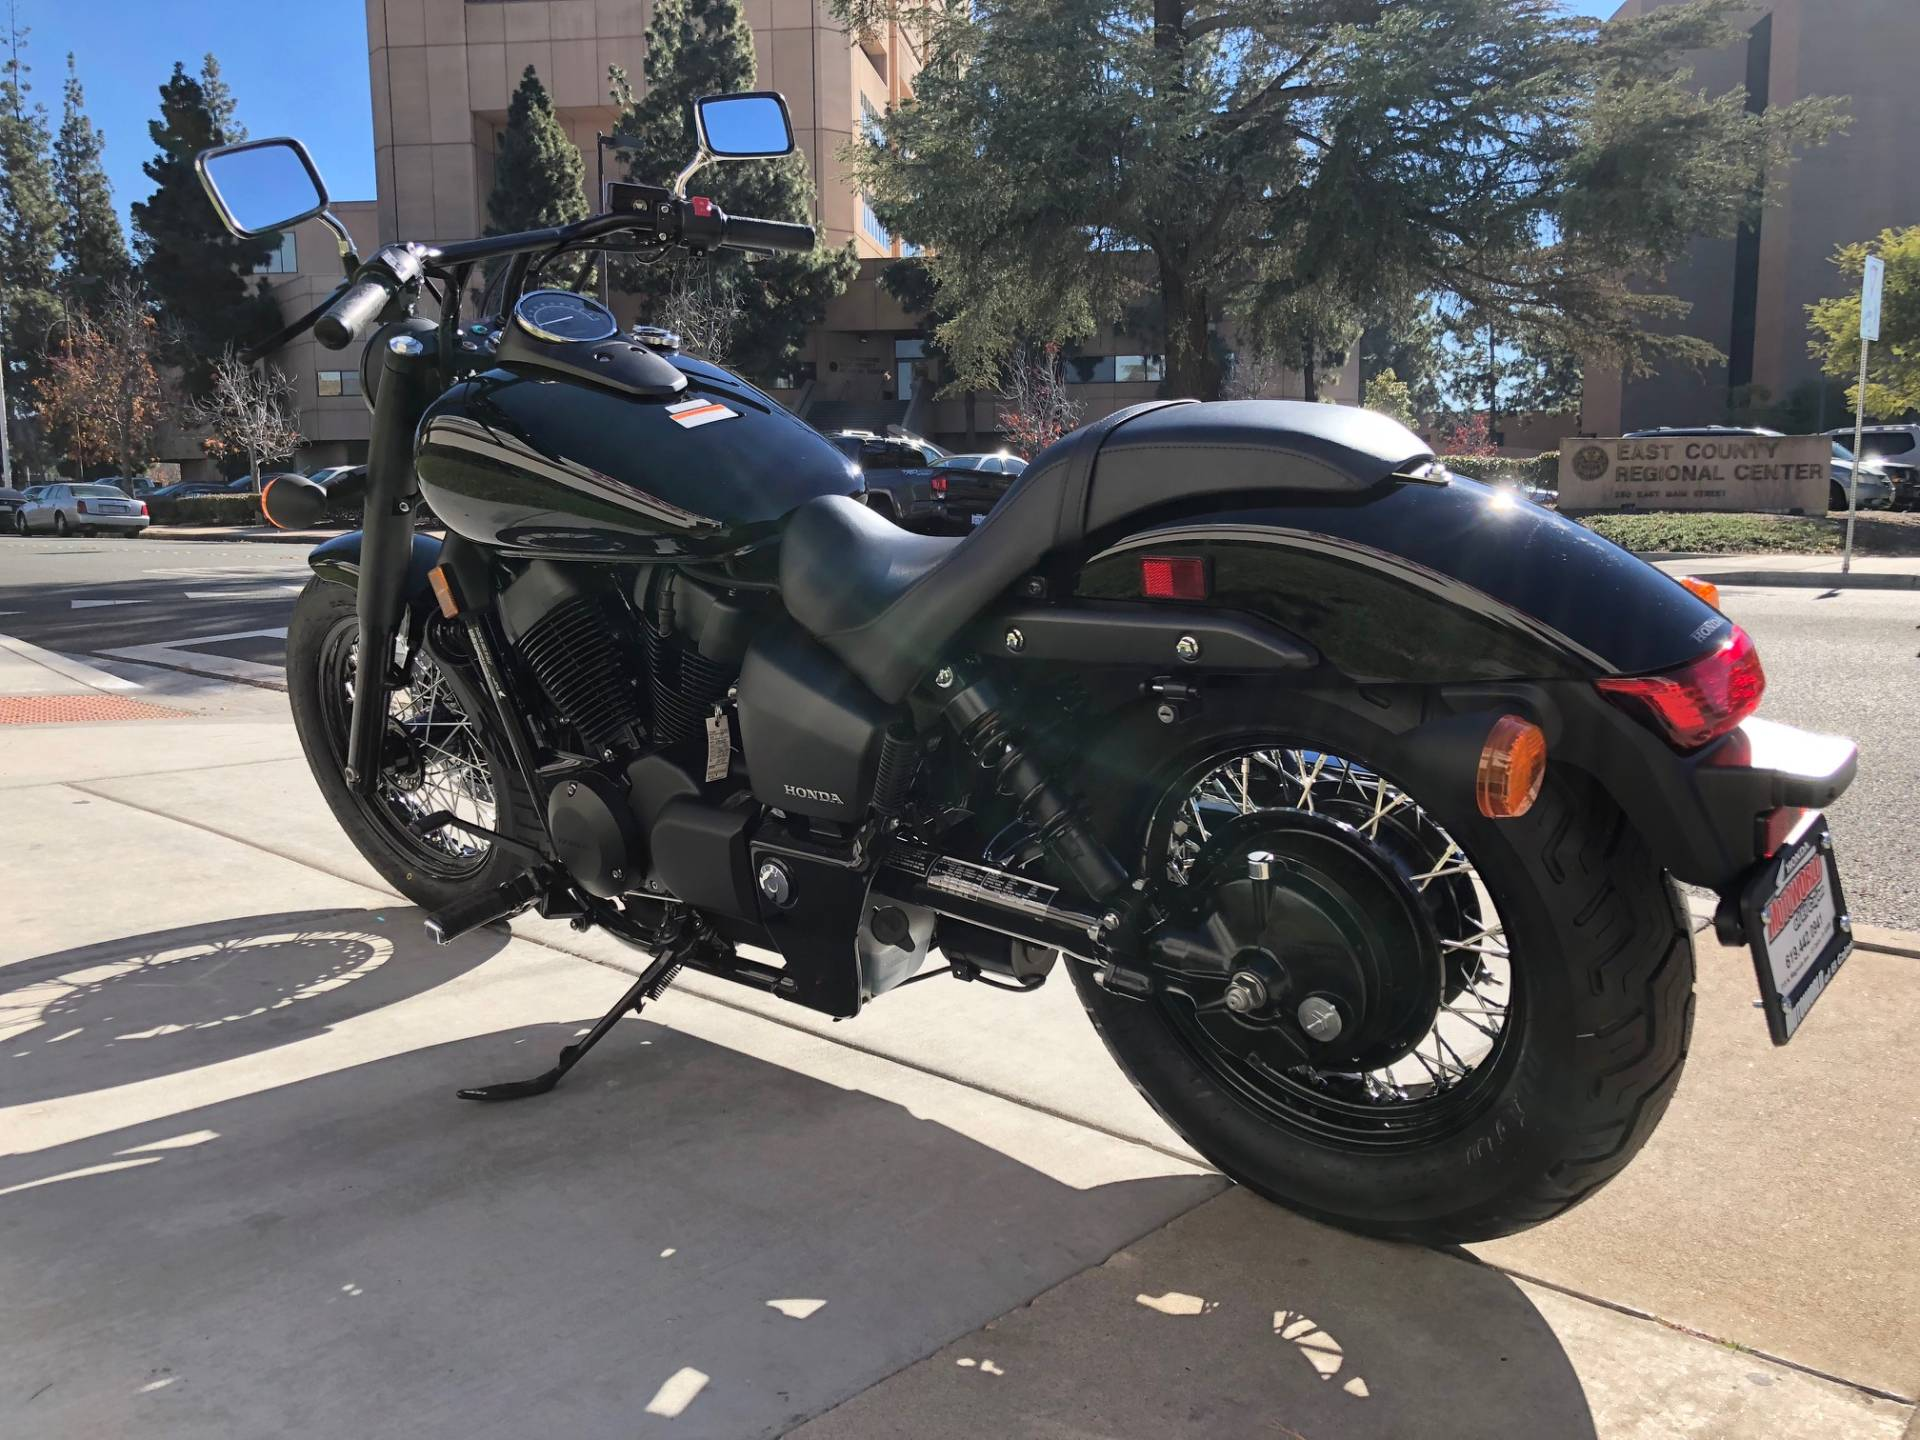 2019 Honda Shadow Phantom 7